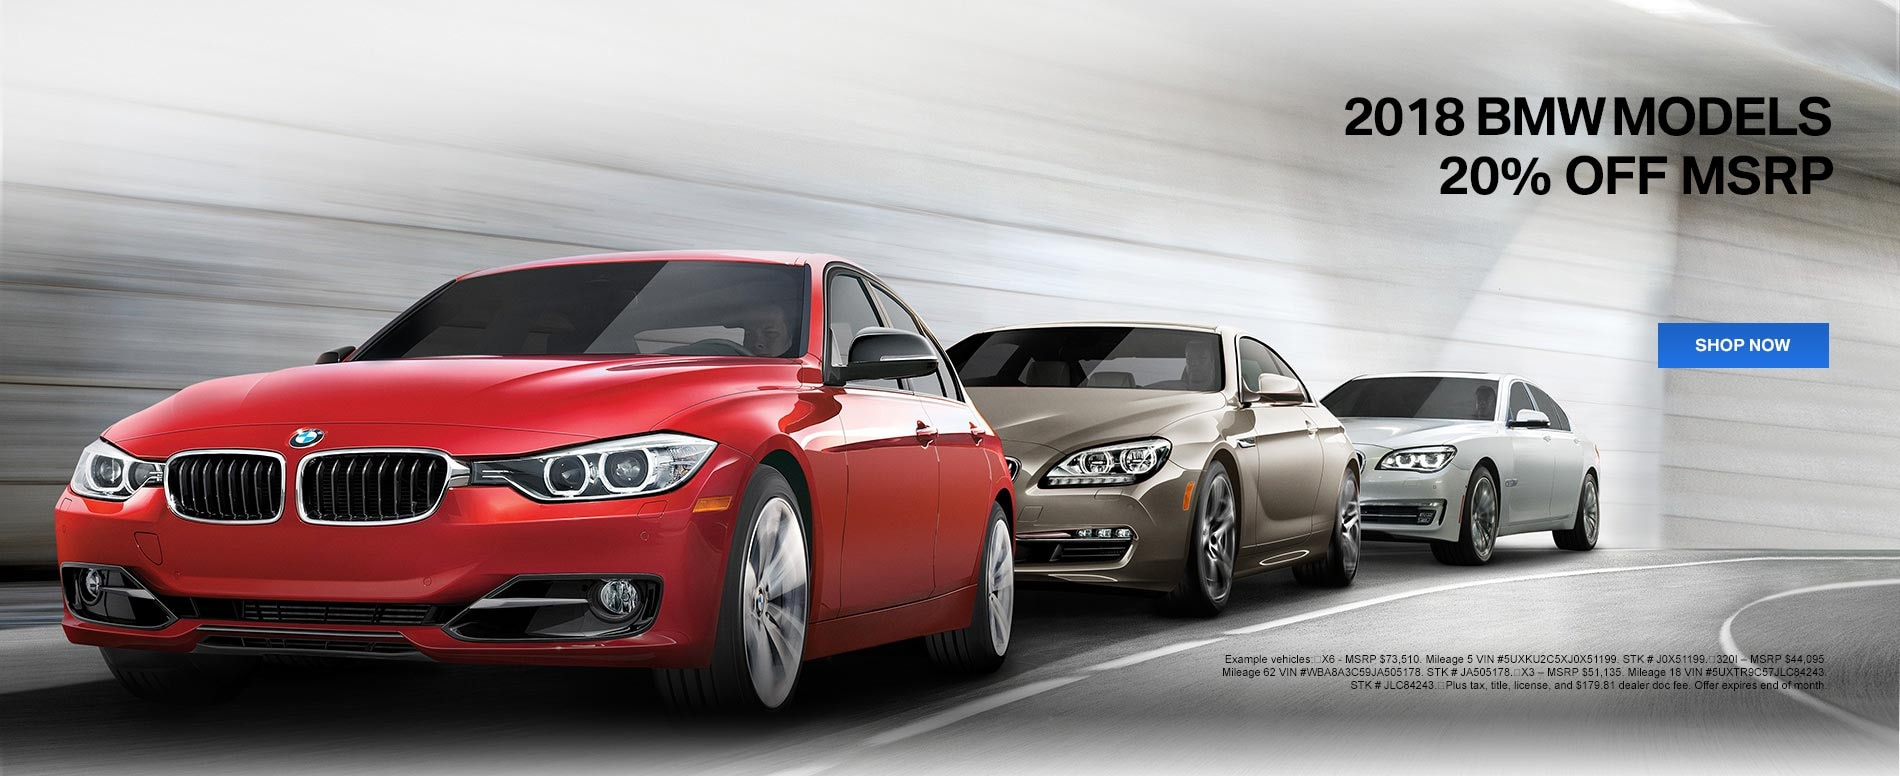 Bmw Dealership Near Me >> Bmw Mt Kisco Bmw Dealership Near Me In Westchester County Ny